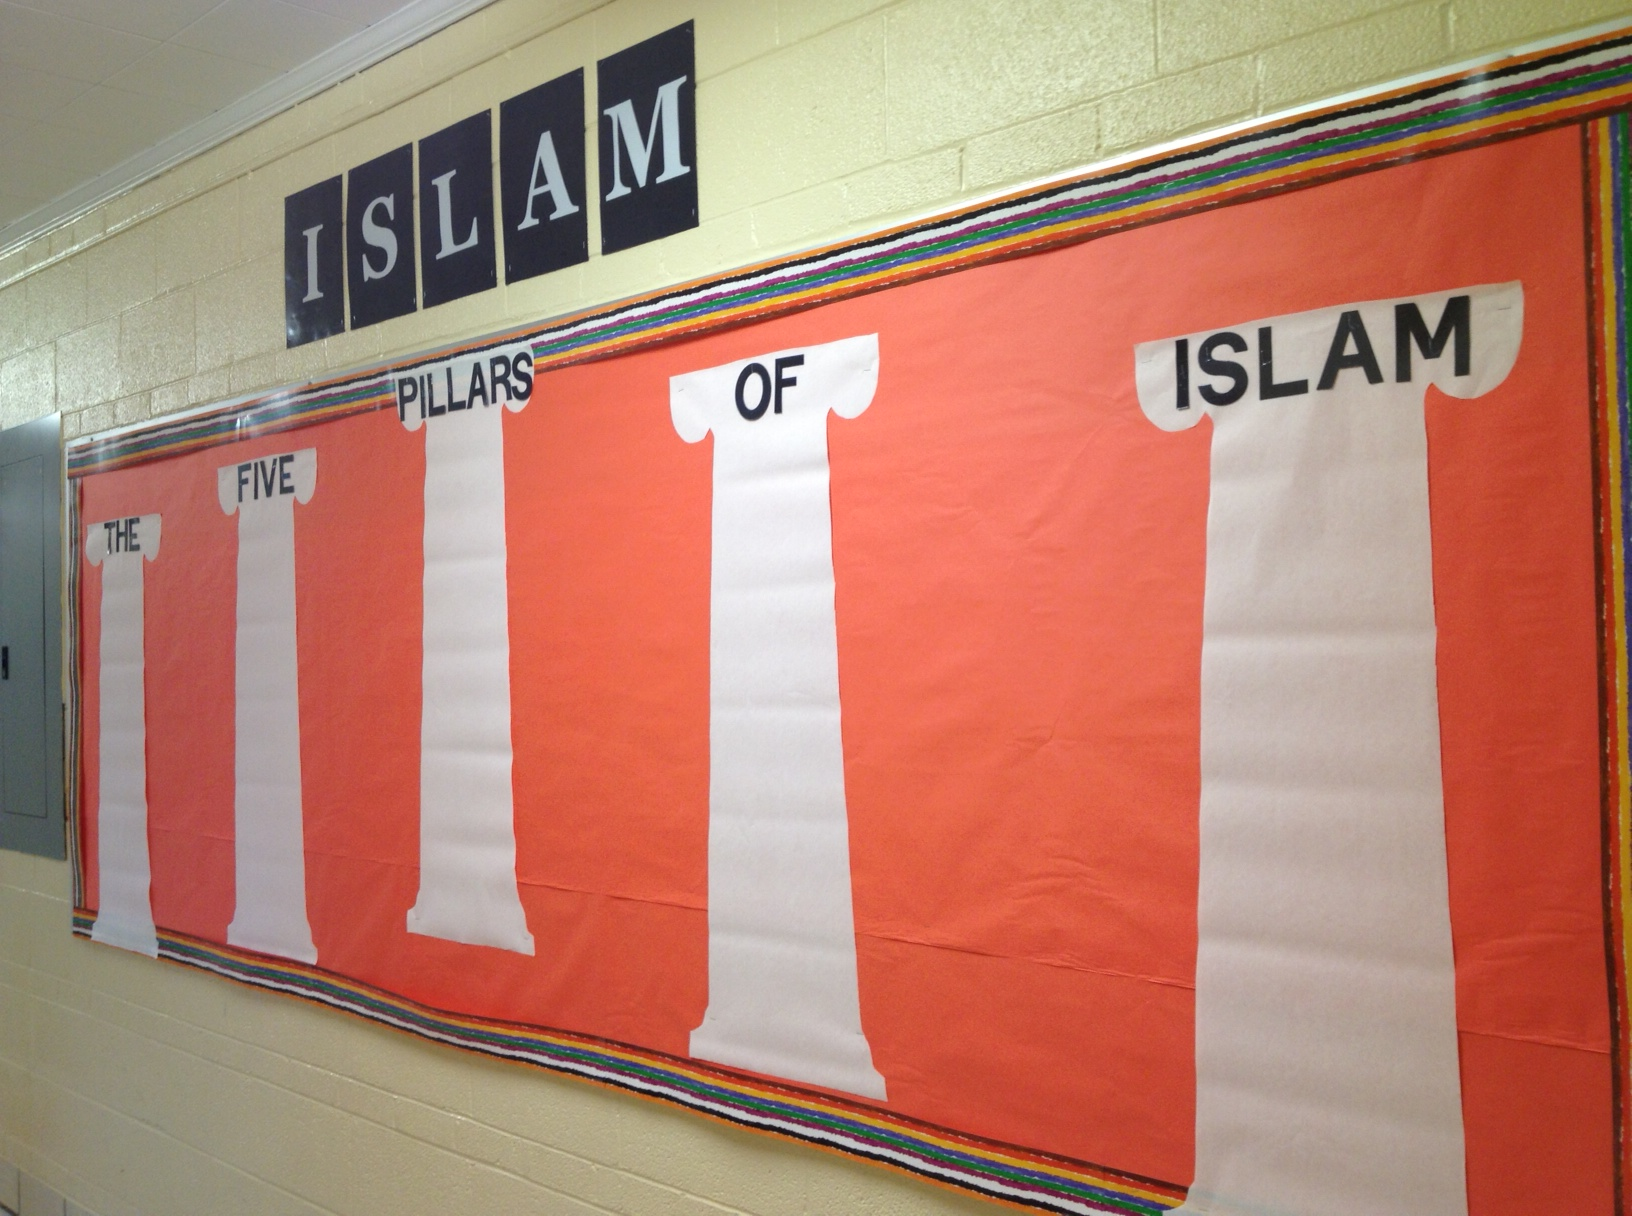 pearson muslim Start studying world history, pearson, topic 8, the muslim world and africa, w/images learn vocabulary, terms, and more with flashcards, games, and other study tools.